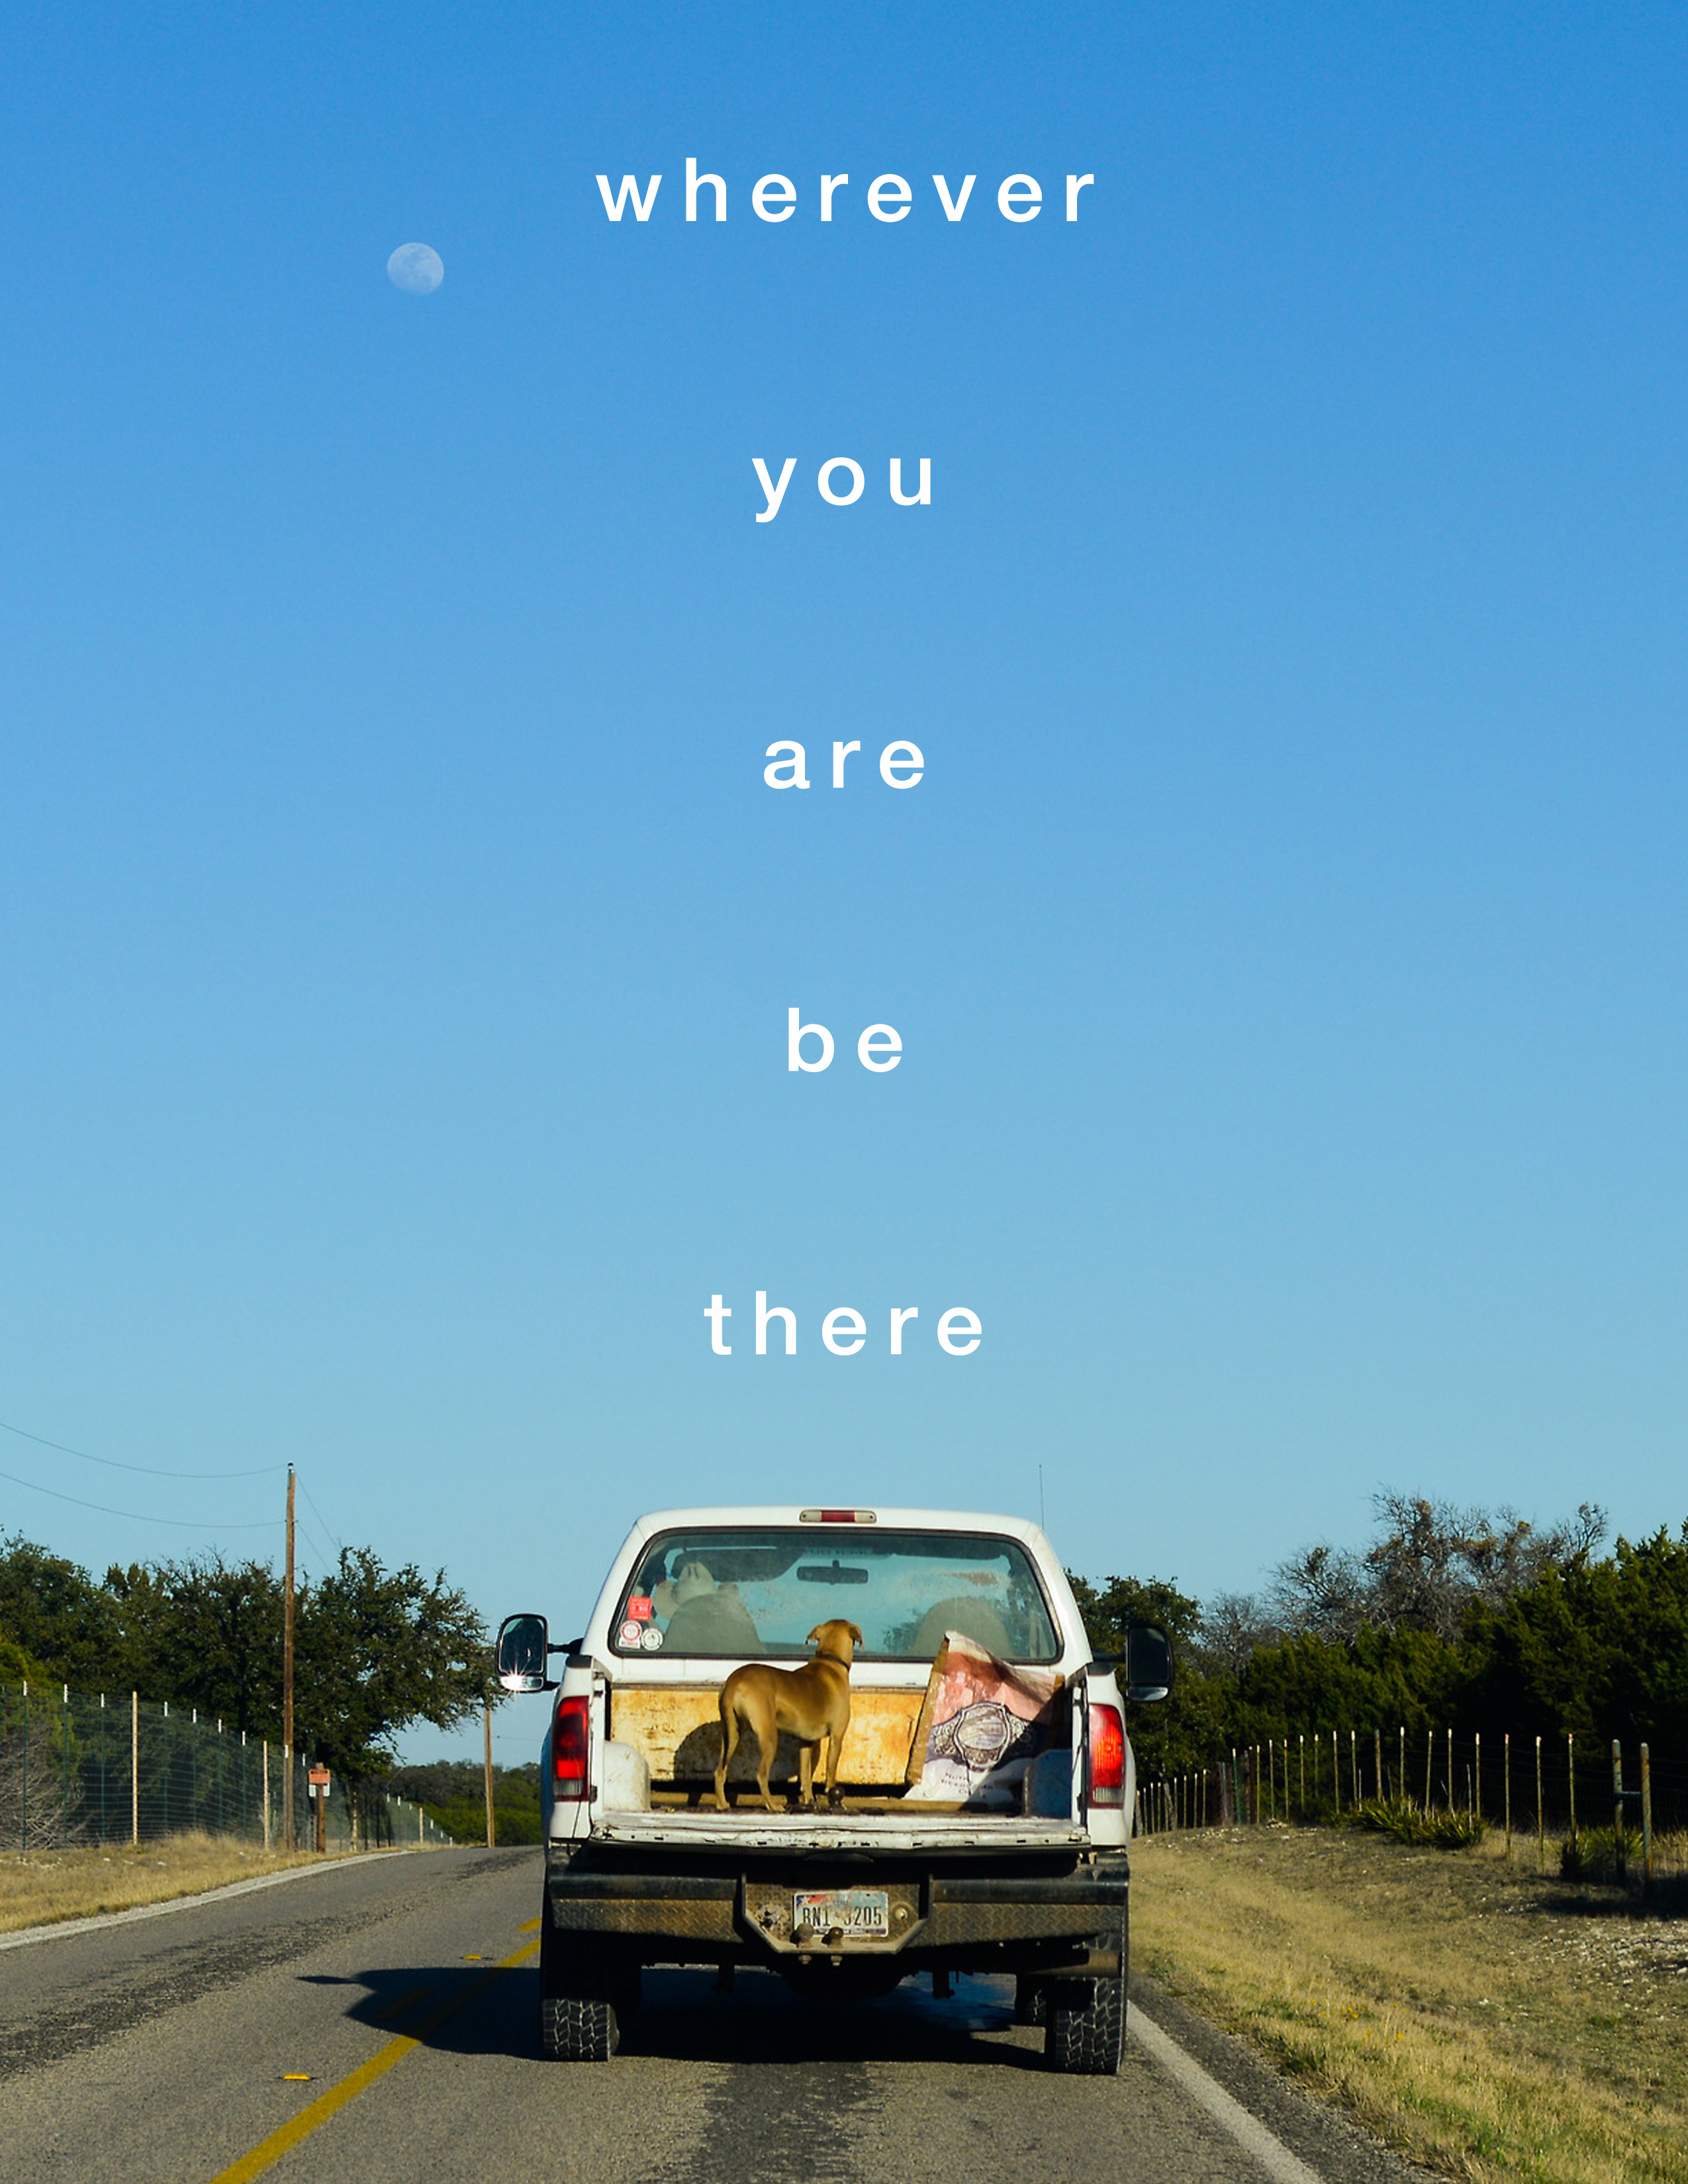 Truck Quotes A Little Inspiration Five 8.5×11 Printouts  Nate Schrader